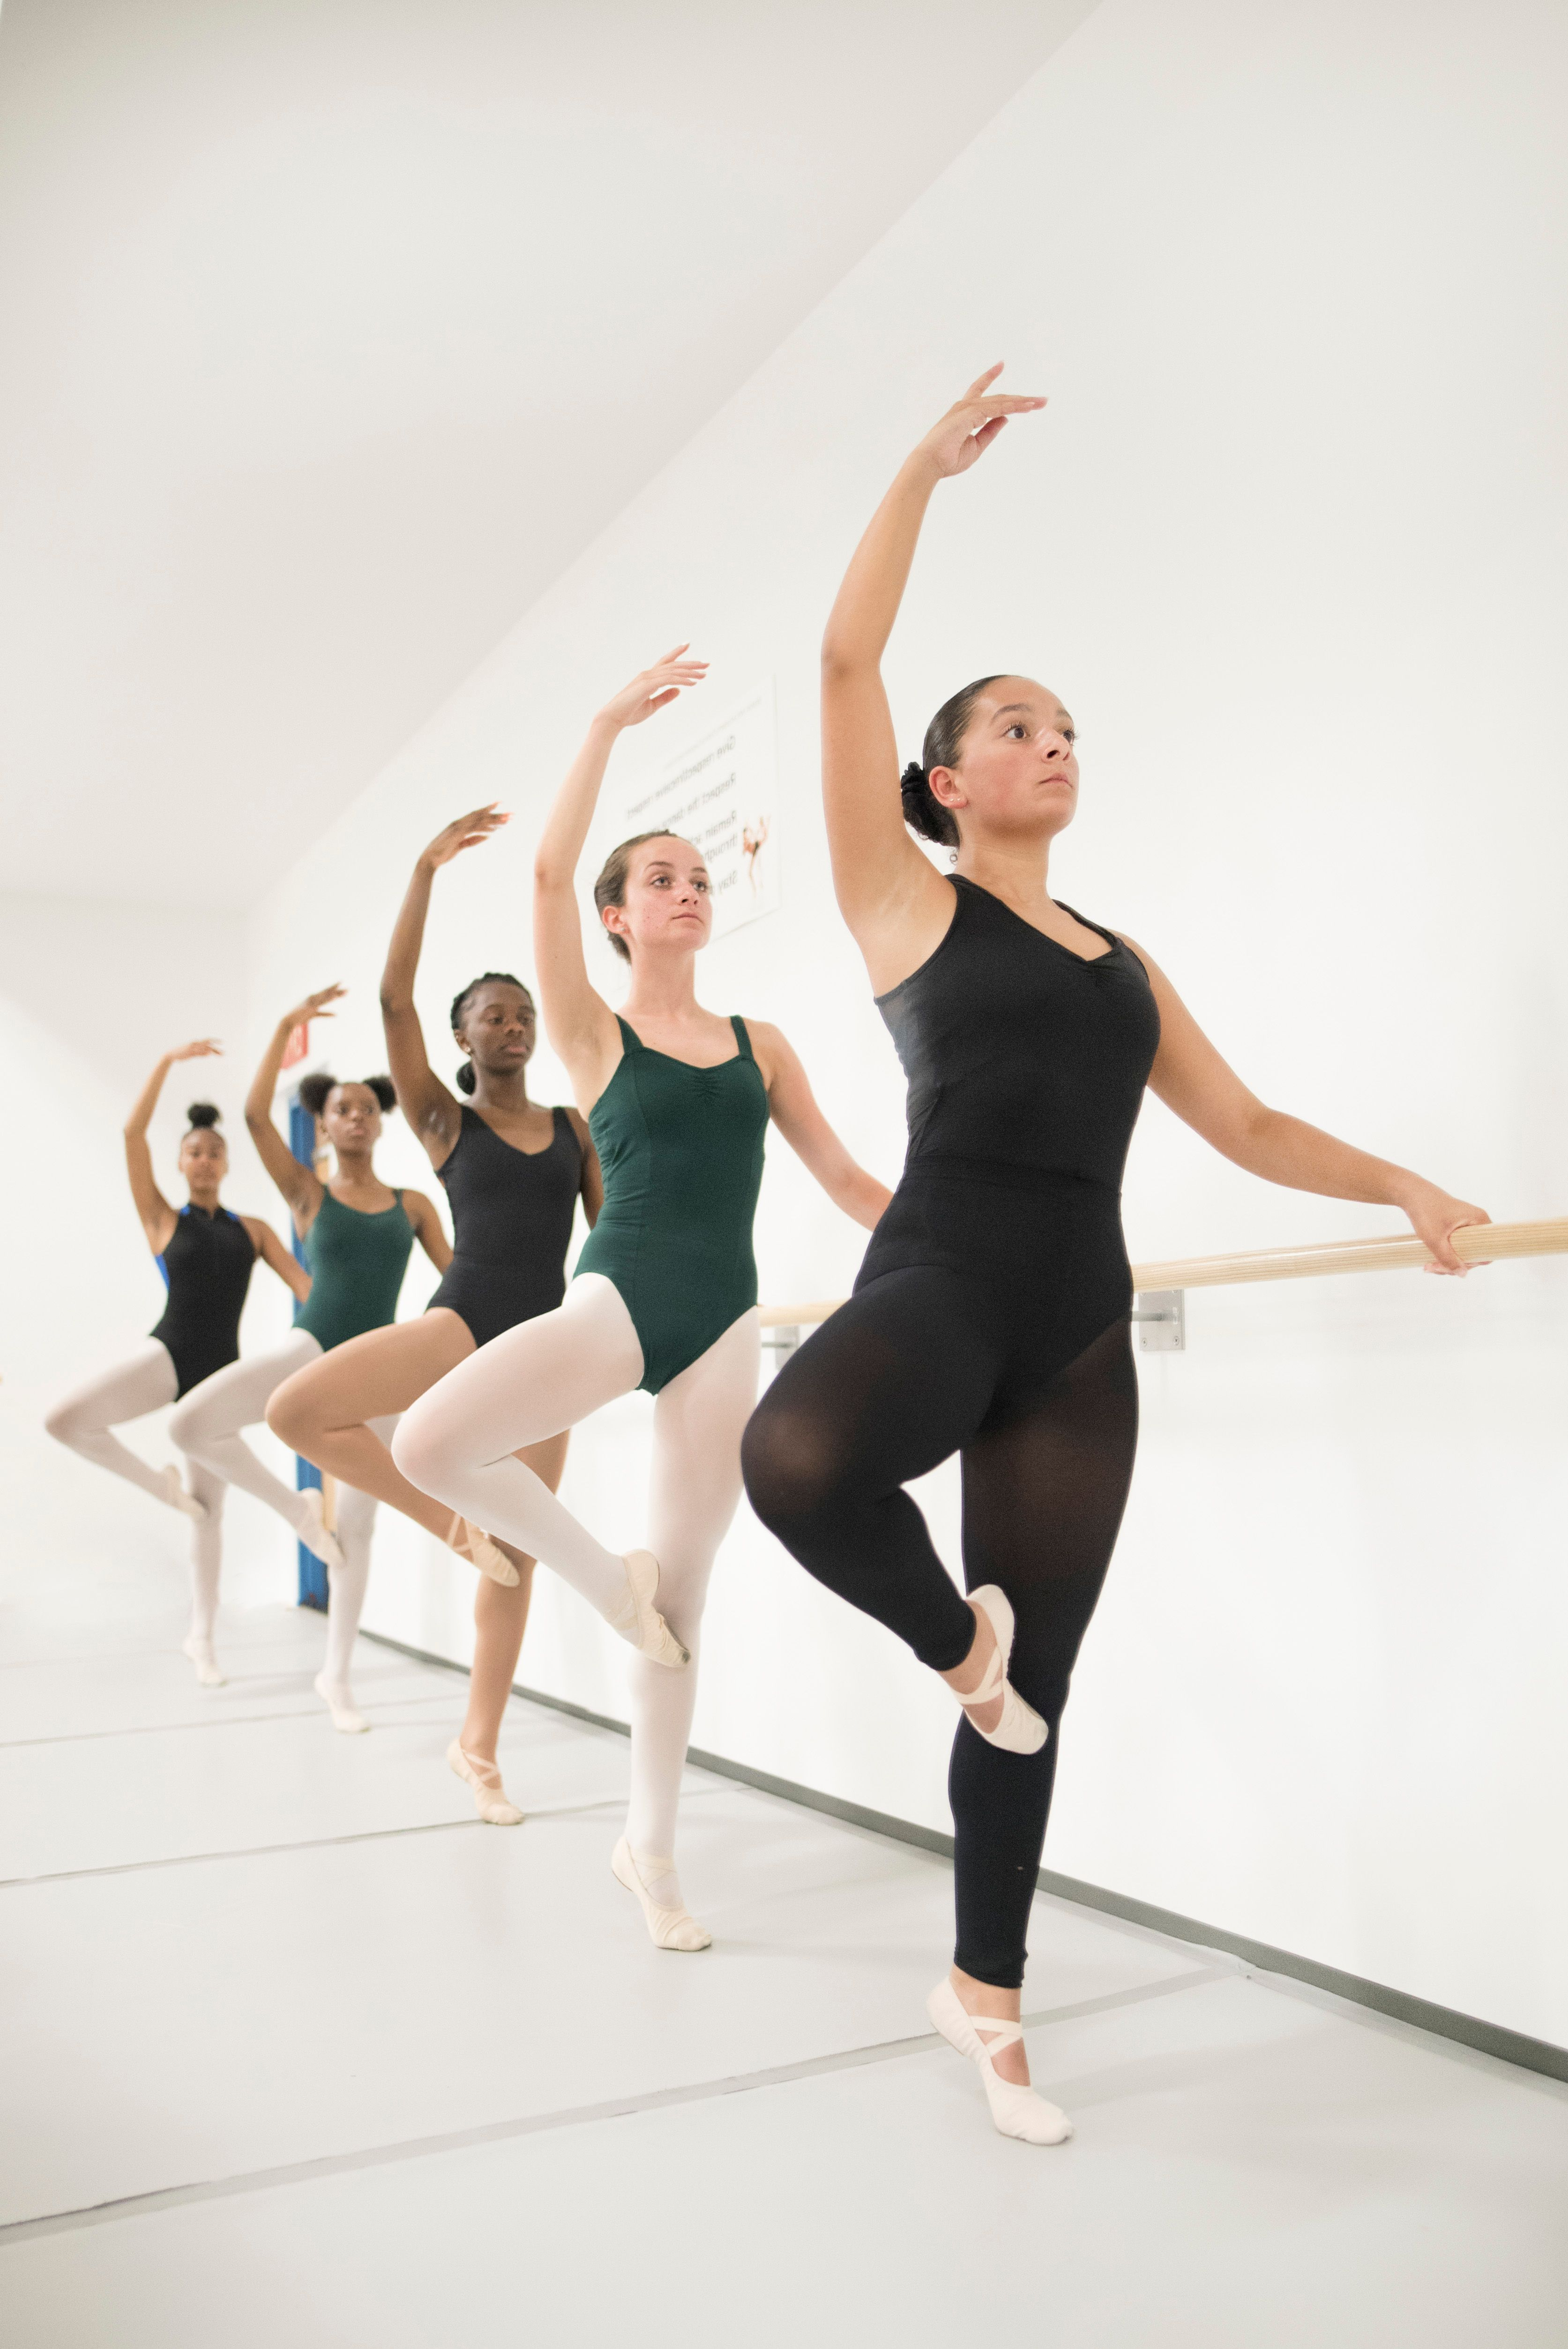 A picture of 5 BAA dance majors all in the same pose with an arm gracefully arched over their head while working on a ballet barre.